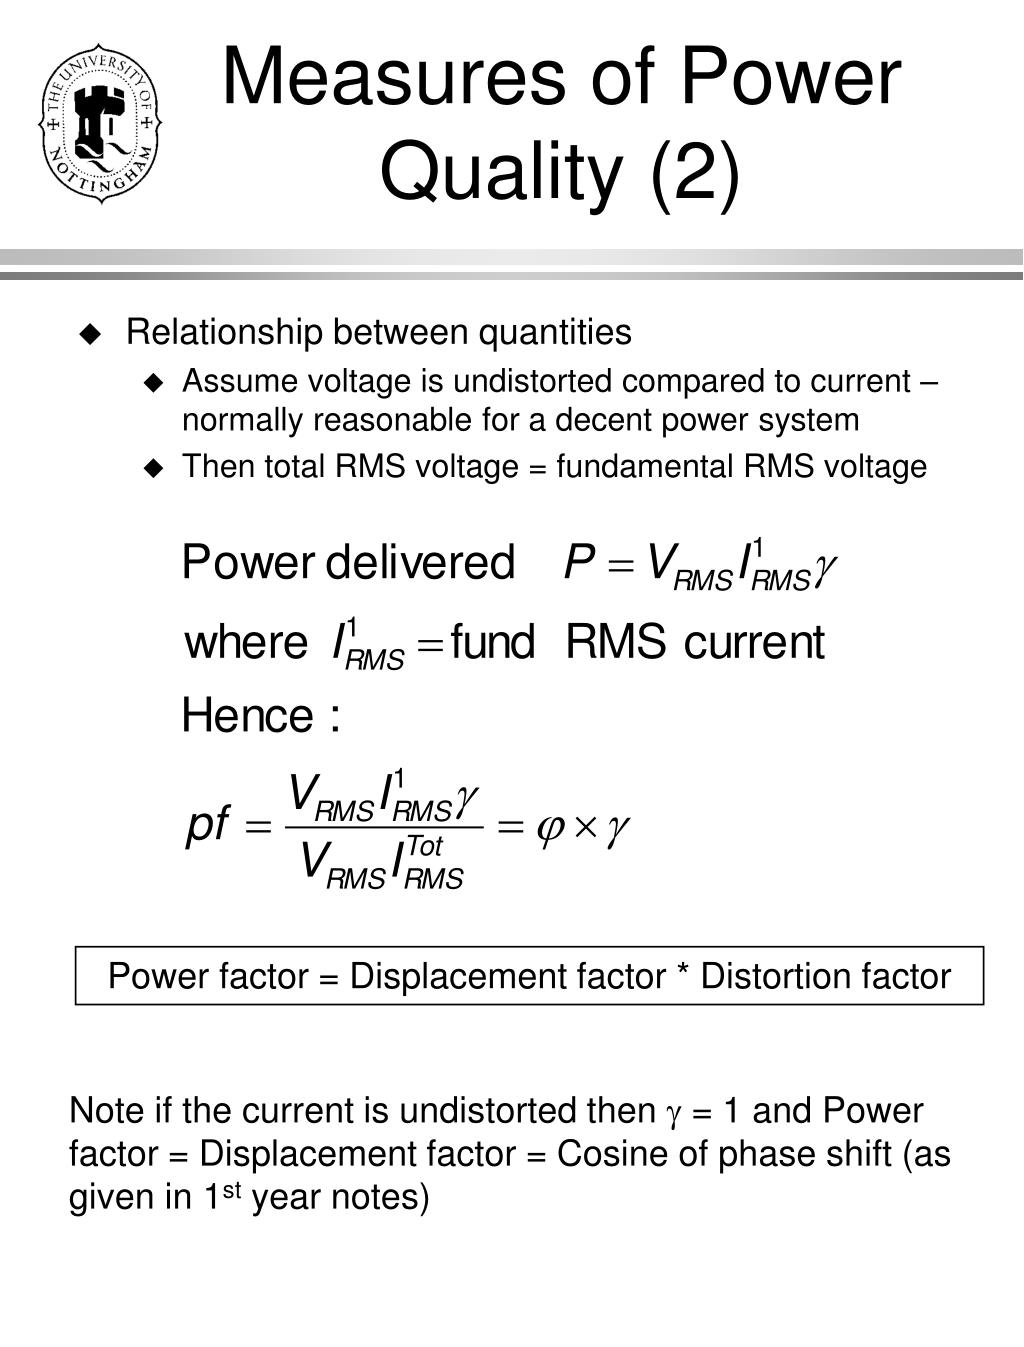 Measures of Power Quality (2)